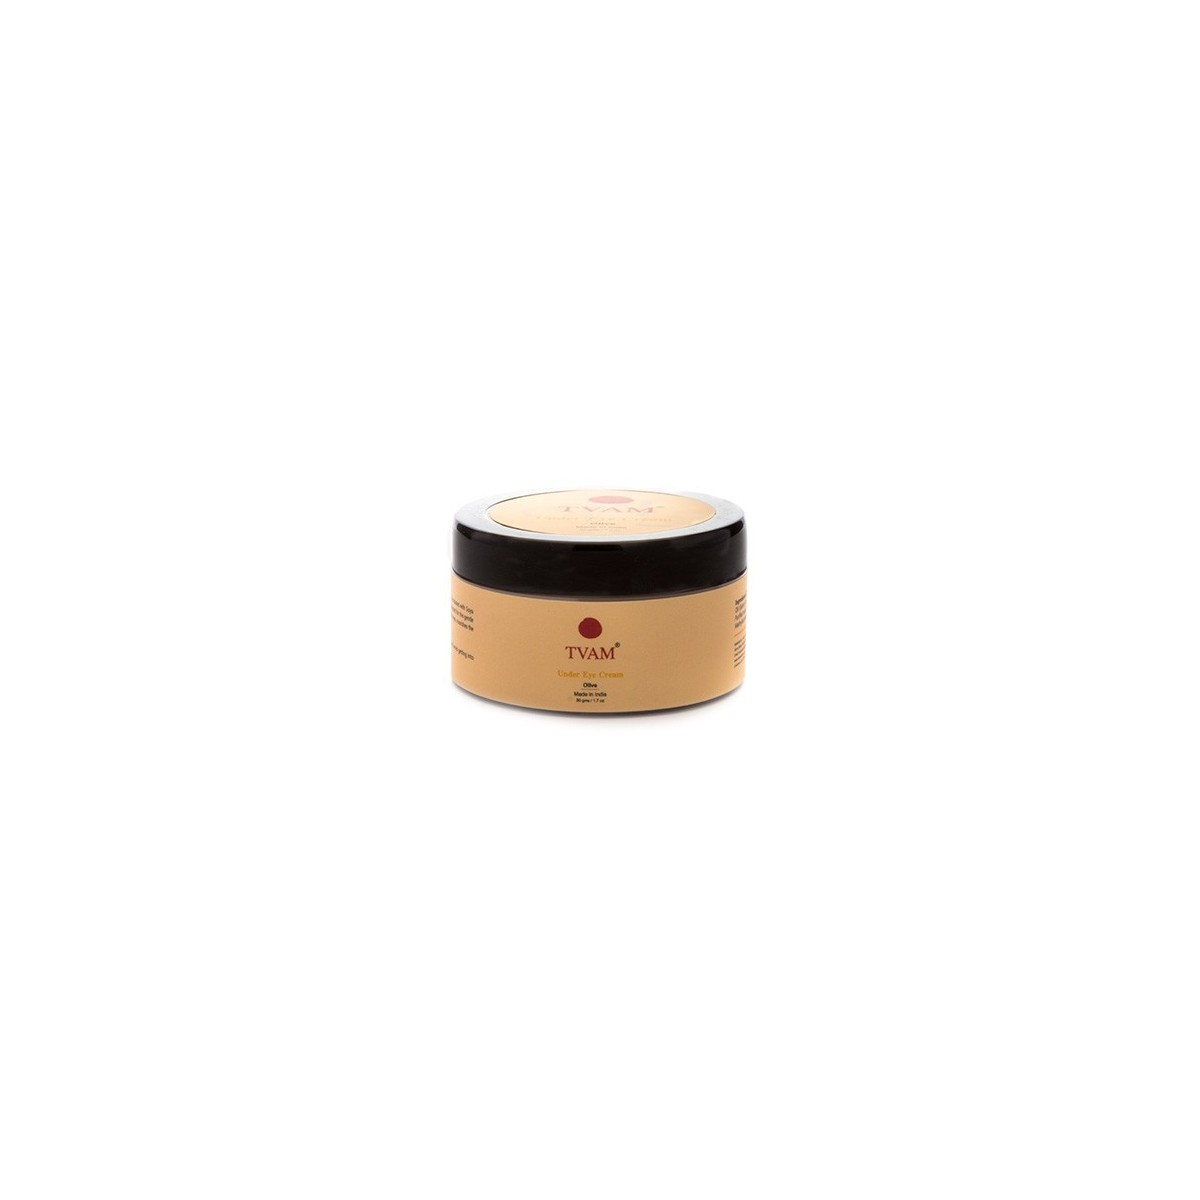 Tvam Olive Under Eye Cream